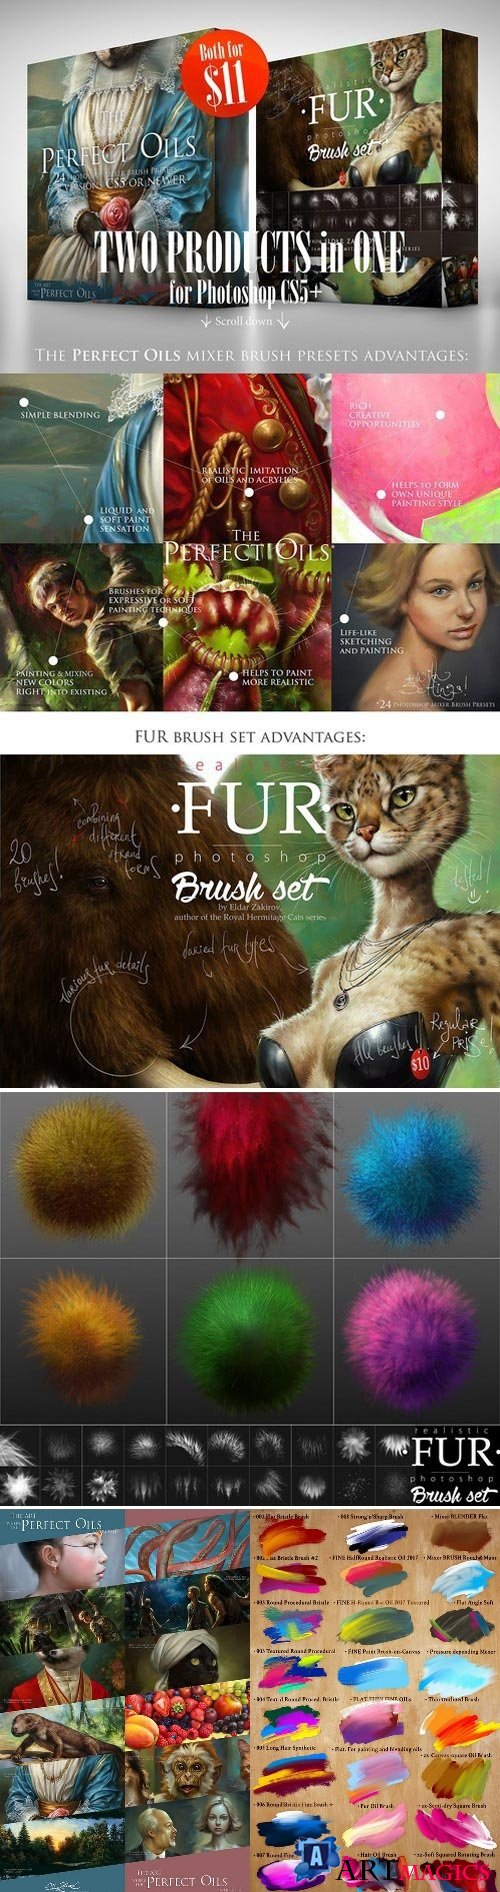 2 in 1: Prefect Oils & FUR Brushsets 2227611